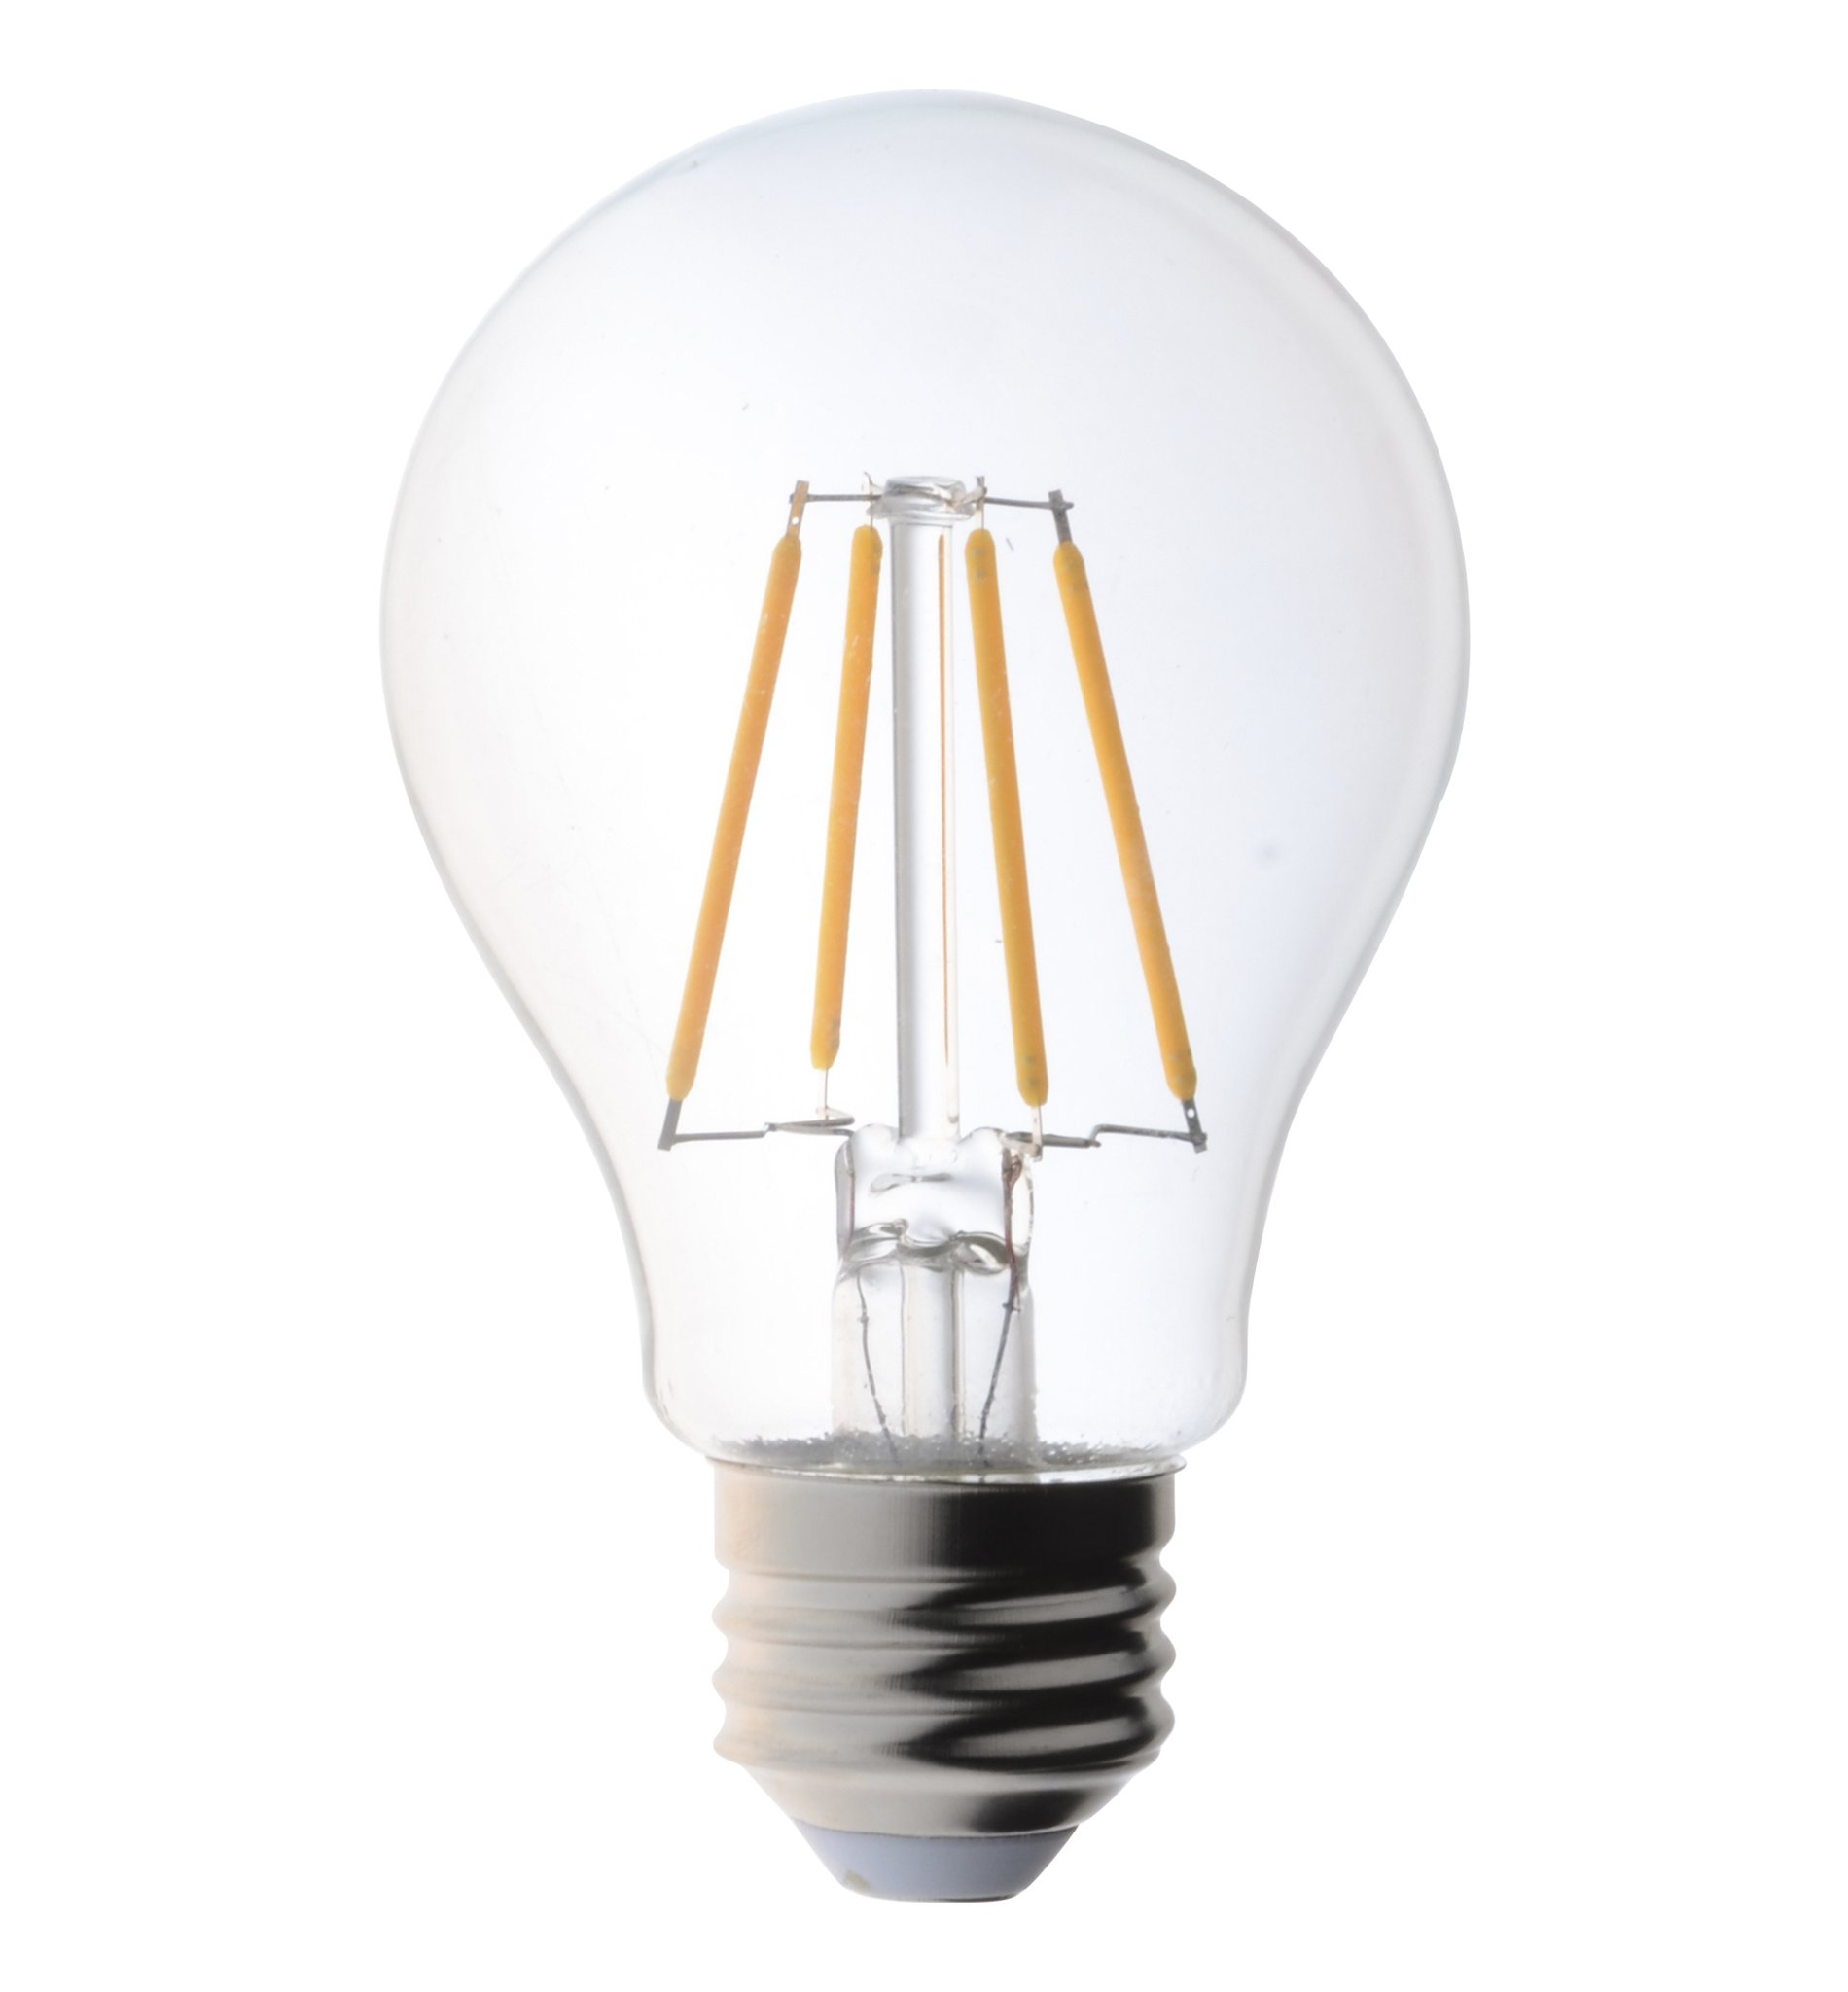 40 Watt Led 6 Pack 40 Watt Light Bulbs Vintage Edison Style Filament Led Dimmable A19 Uses 4 5 Watts Warm White 2700k Clear Pendent Light Bulb Ul Listed